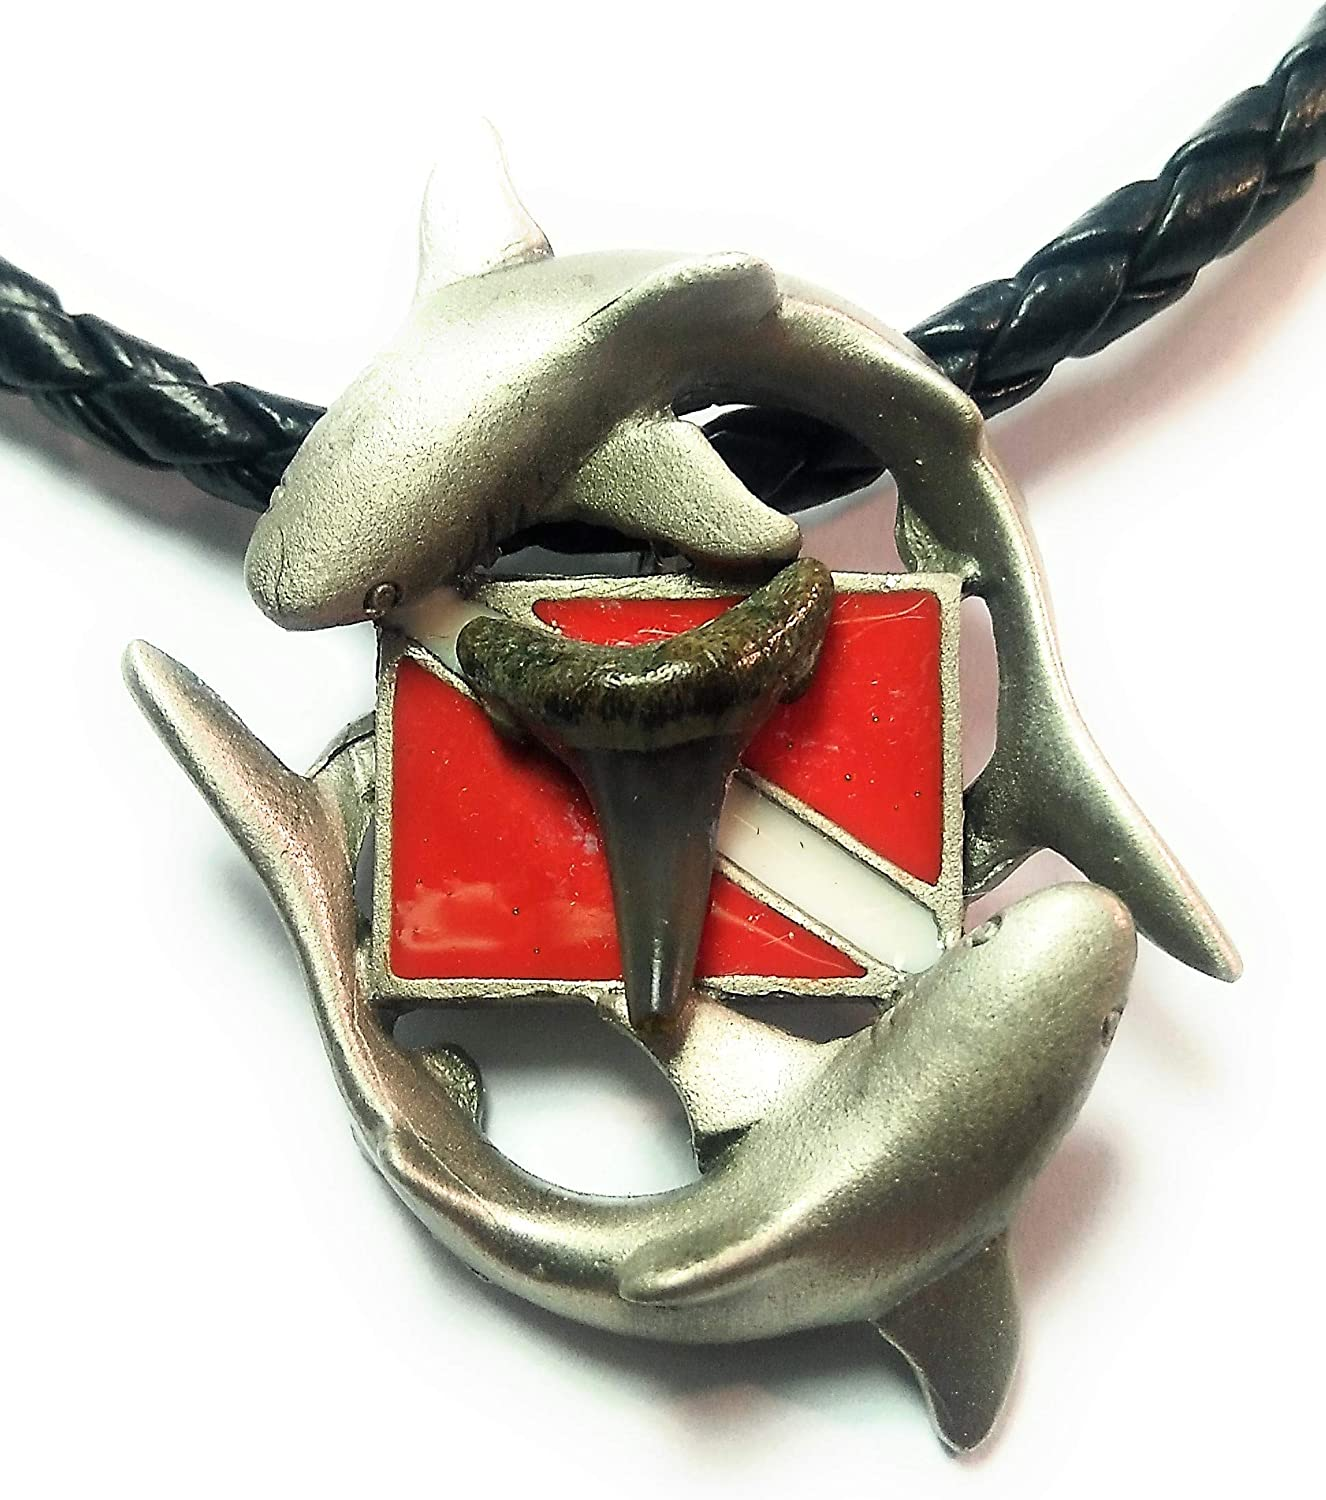 New Silver Pewter Diver's Down Flag Necklace with Prehistoric Megalodon Fossil Shark Tooth